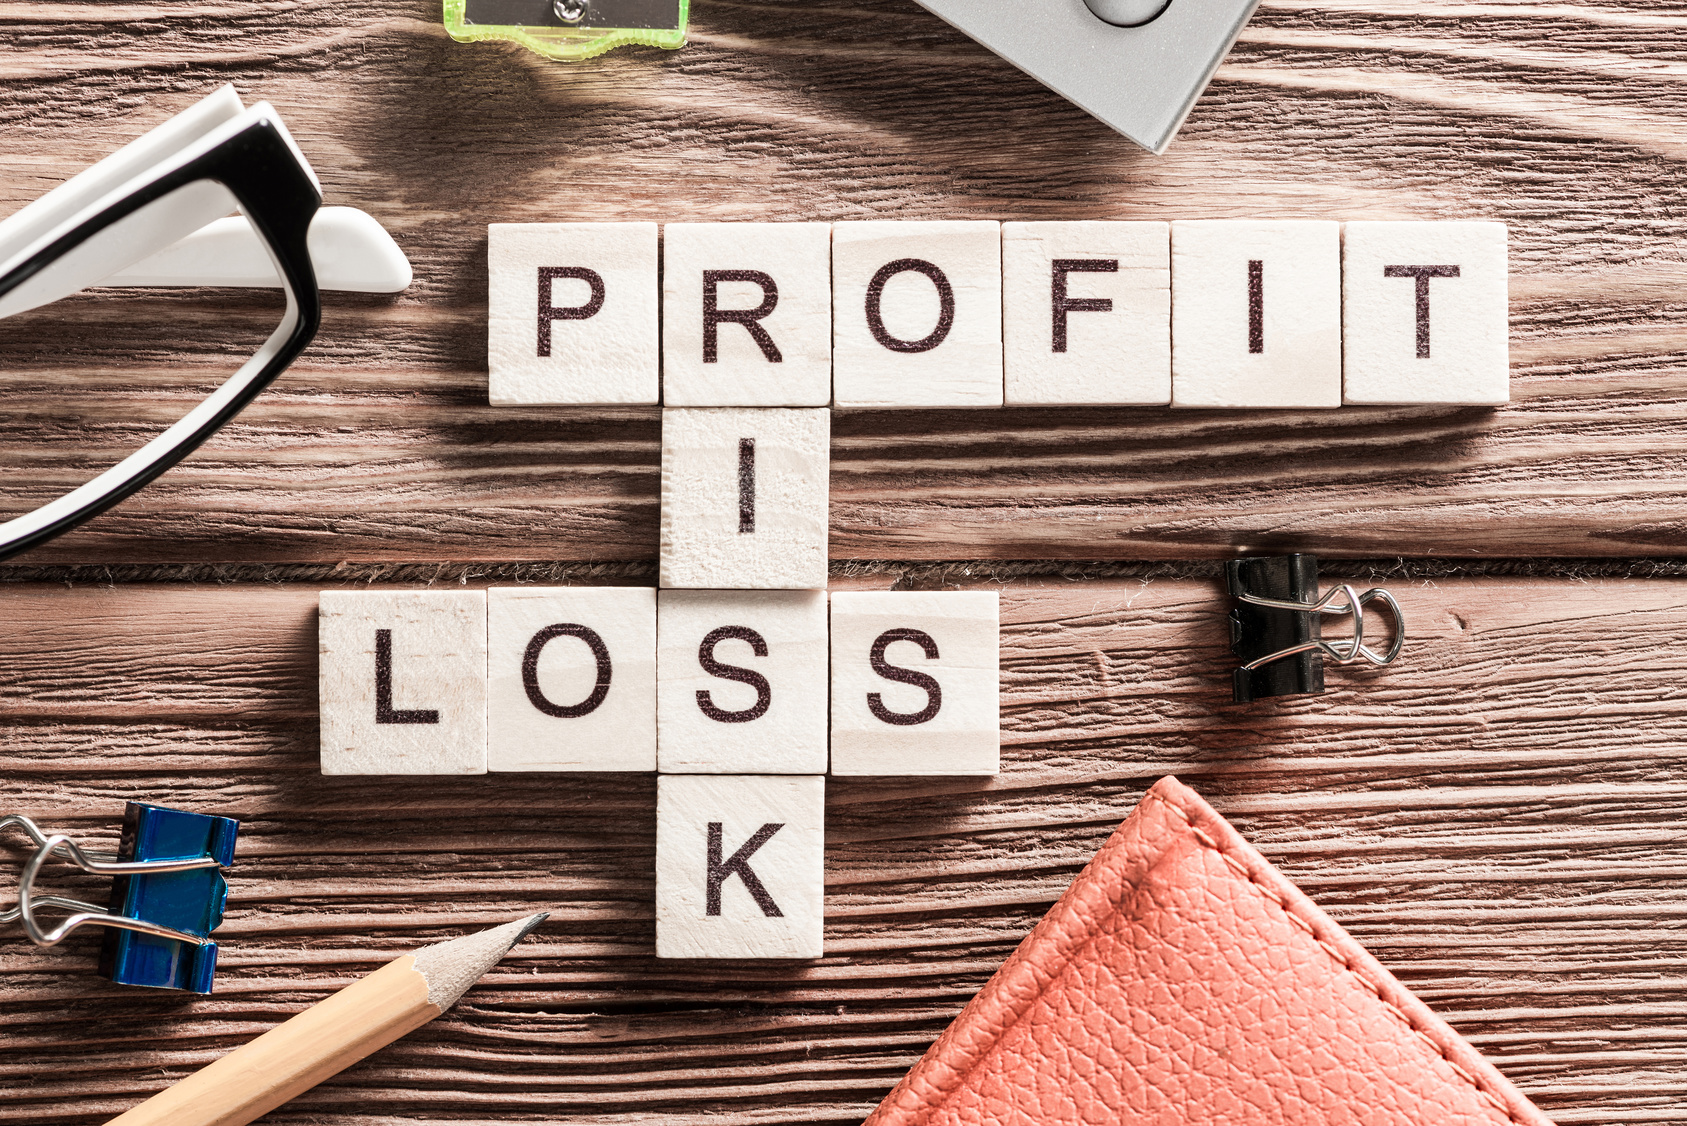 Profit, loss, and risk in letter tiles on cluttered desk